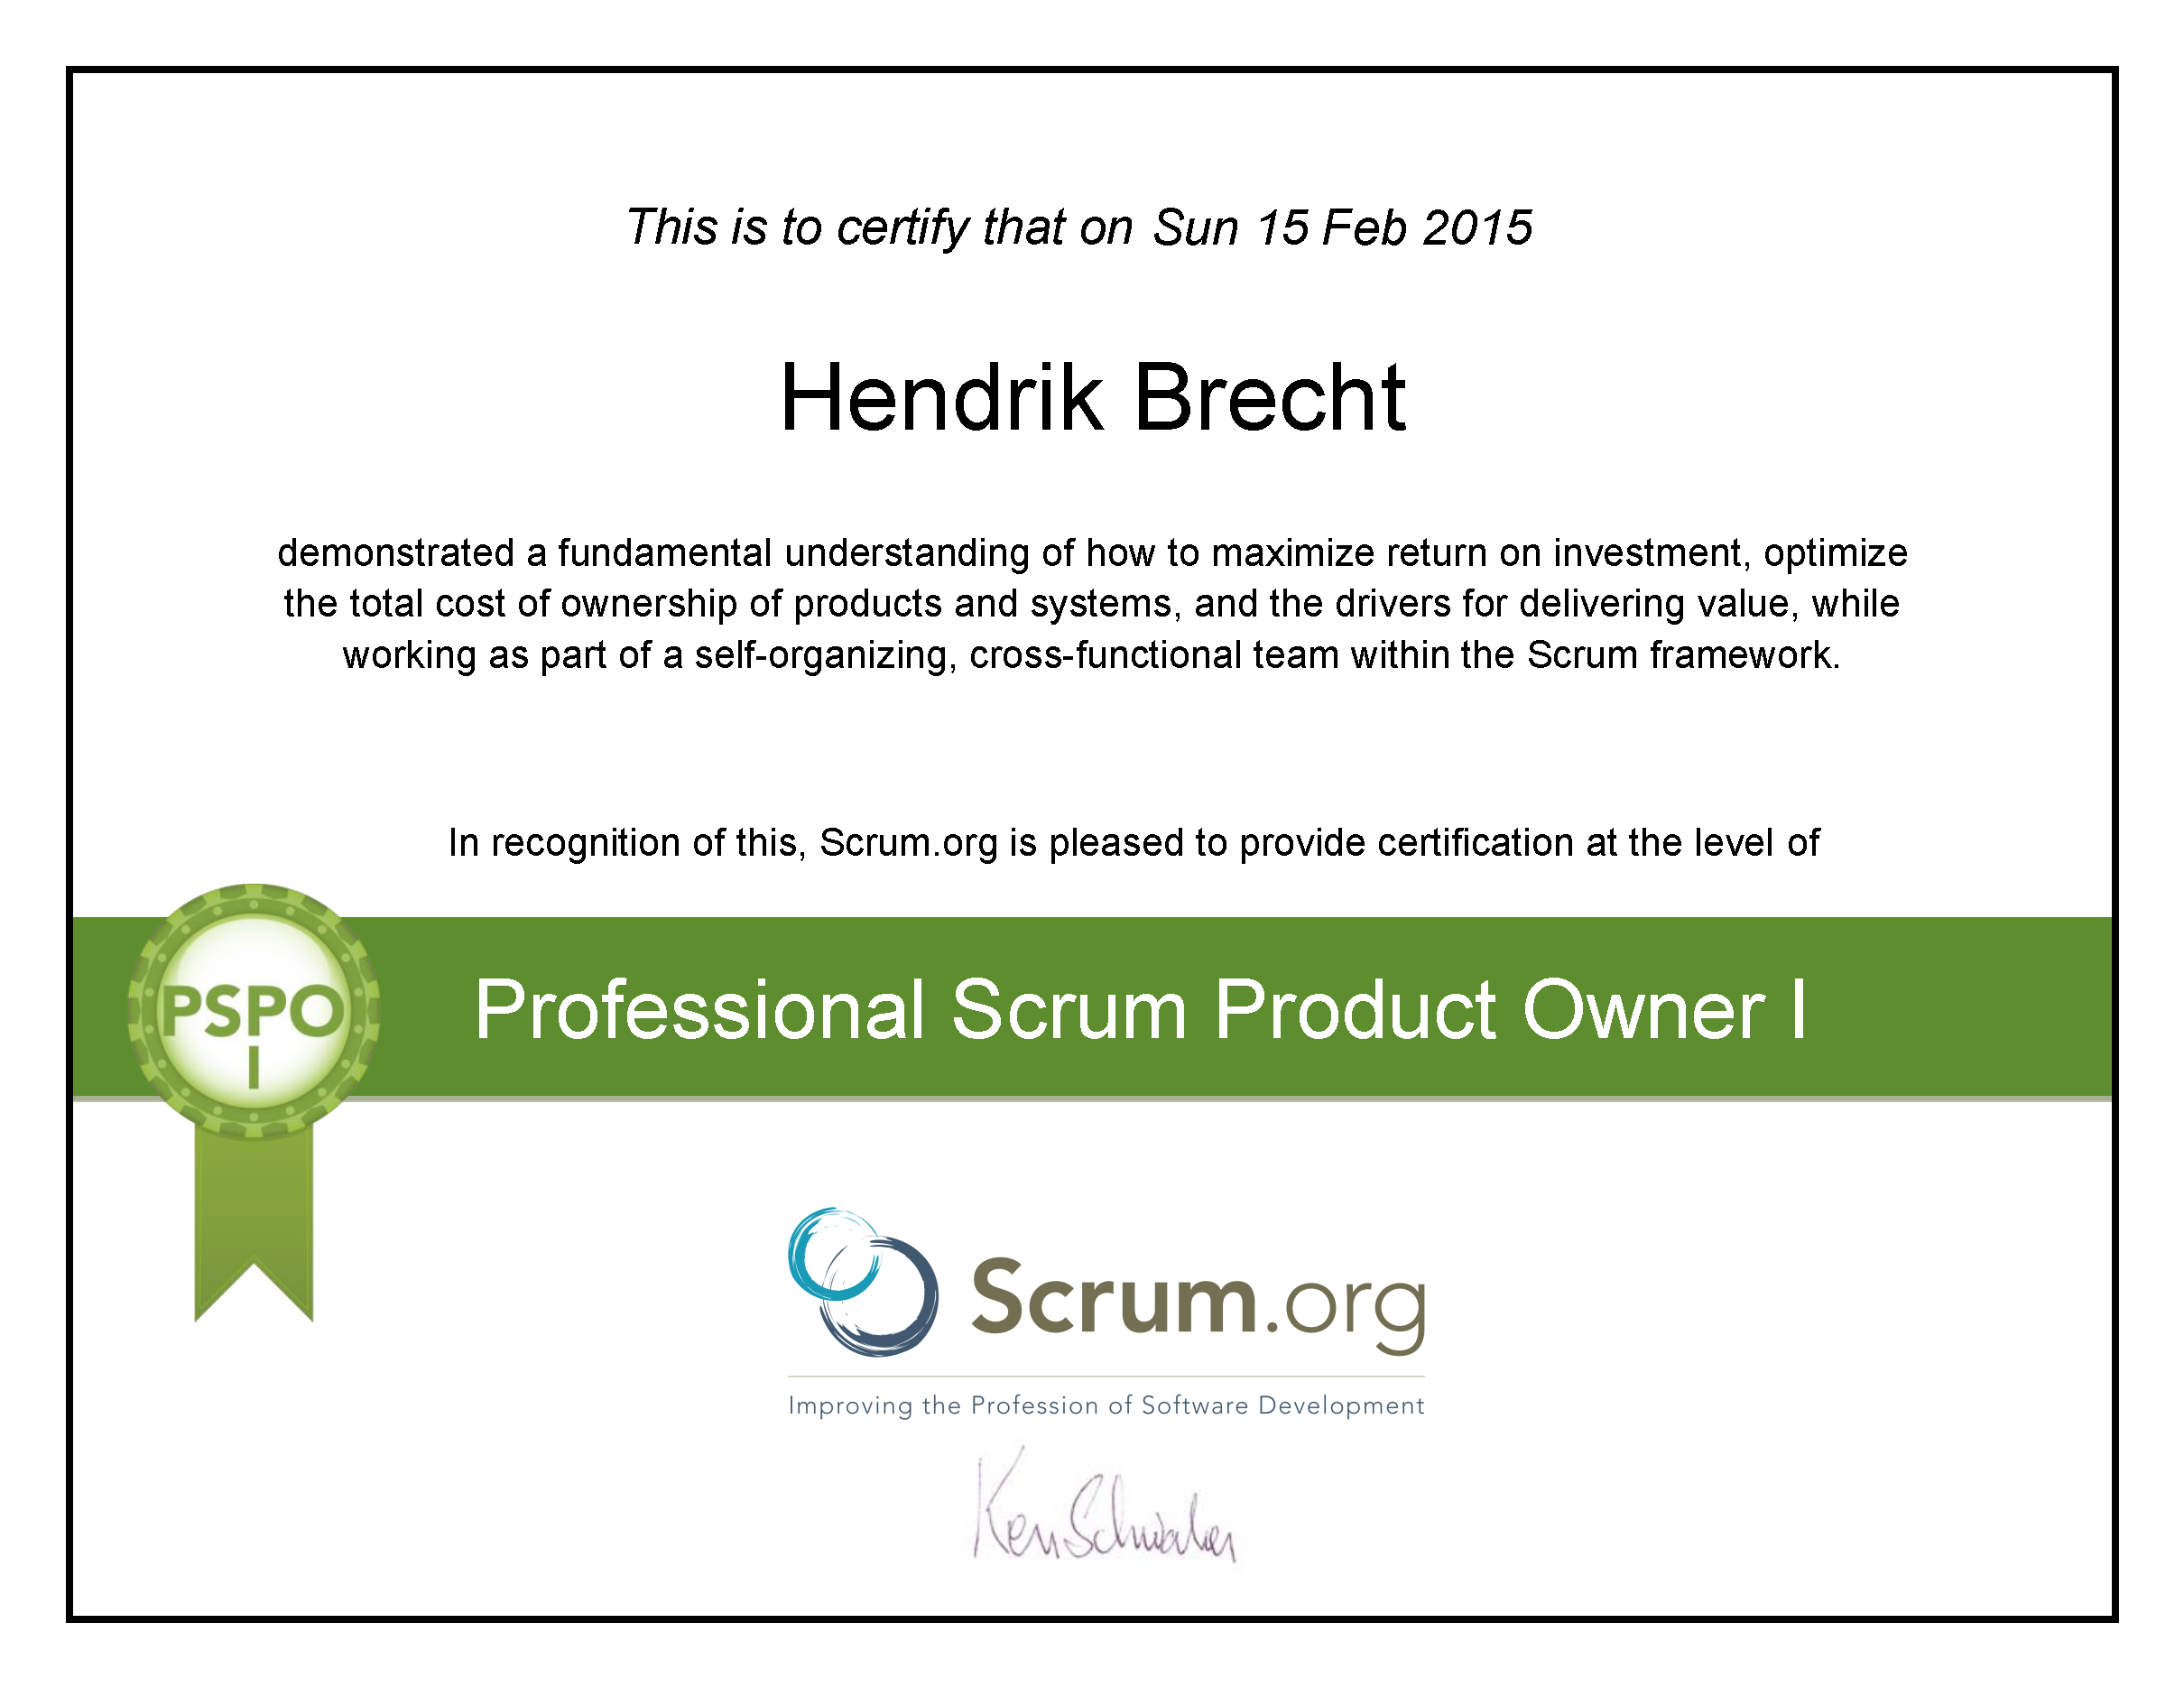 Hendrik Brecht - Professional Scrum Product Owner - 2015 PSPO